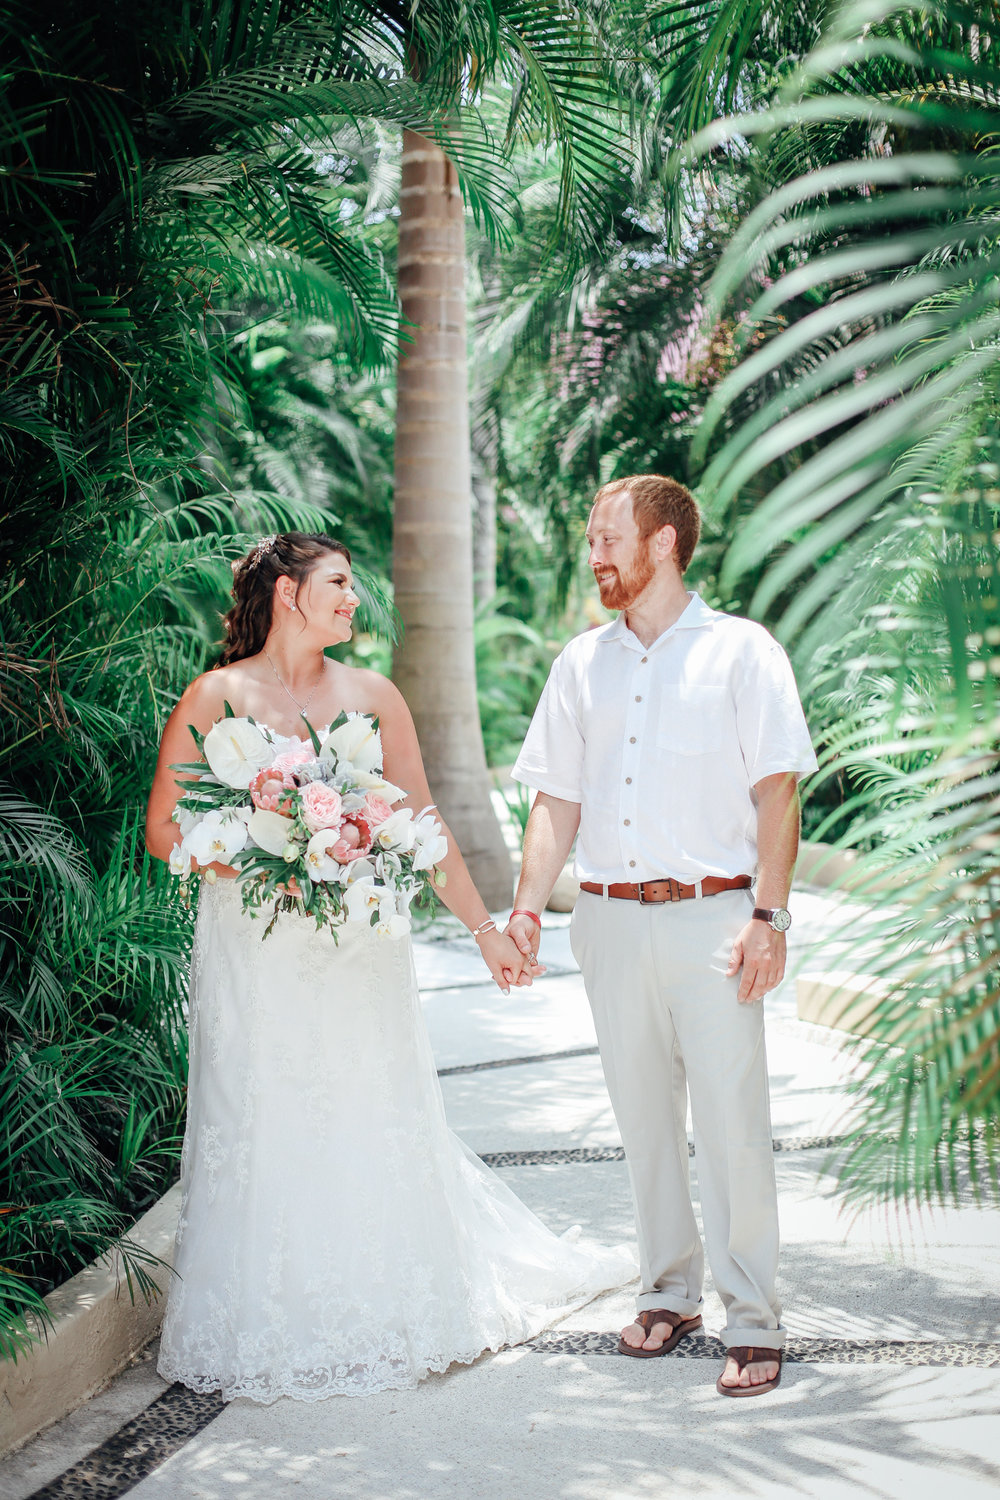 Tiffany and Ryan - Puerto Vallarta Wedding Photographer - 40.jpg